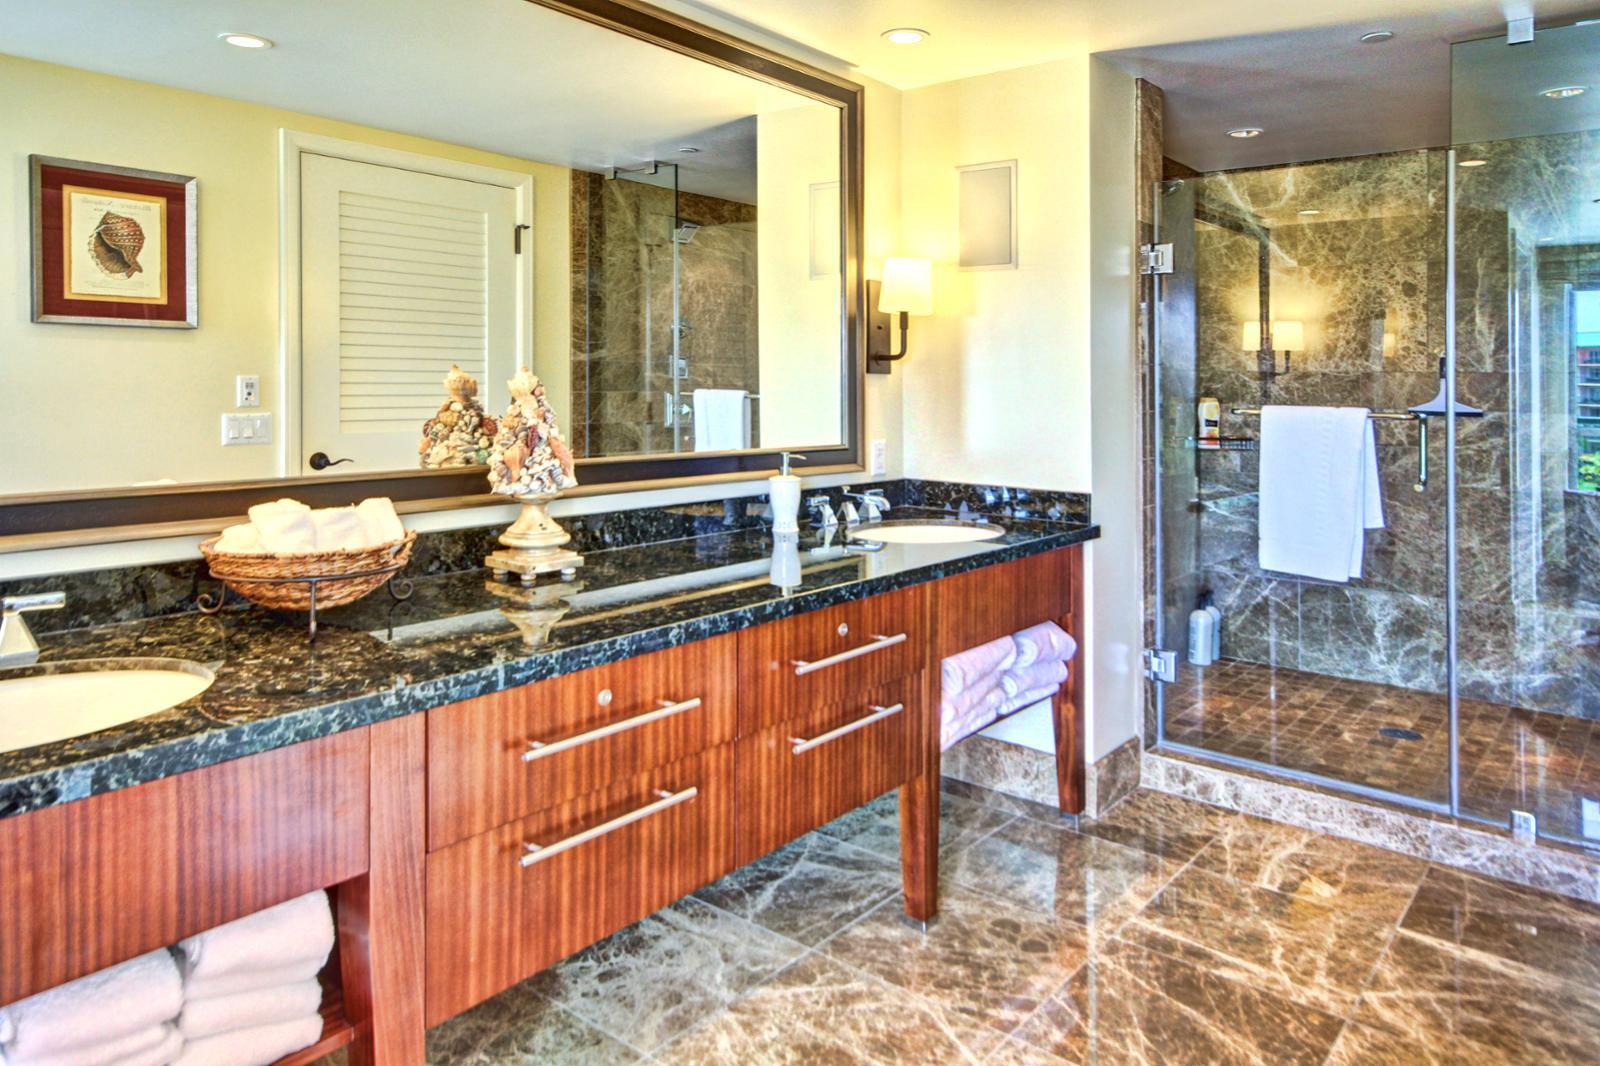 Second master bathroom has a large vanity custom mirror with dual sinks and large walk in shower.